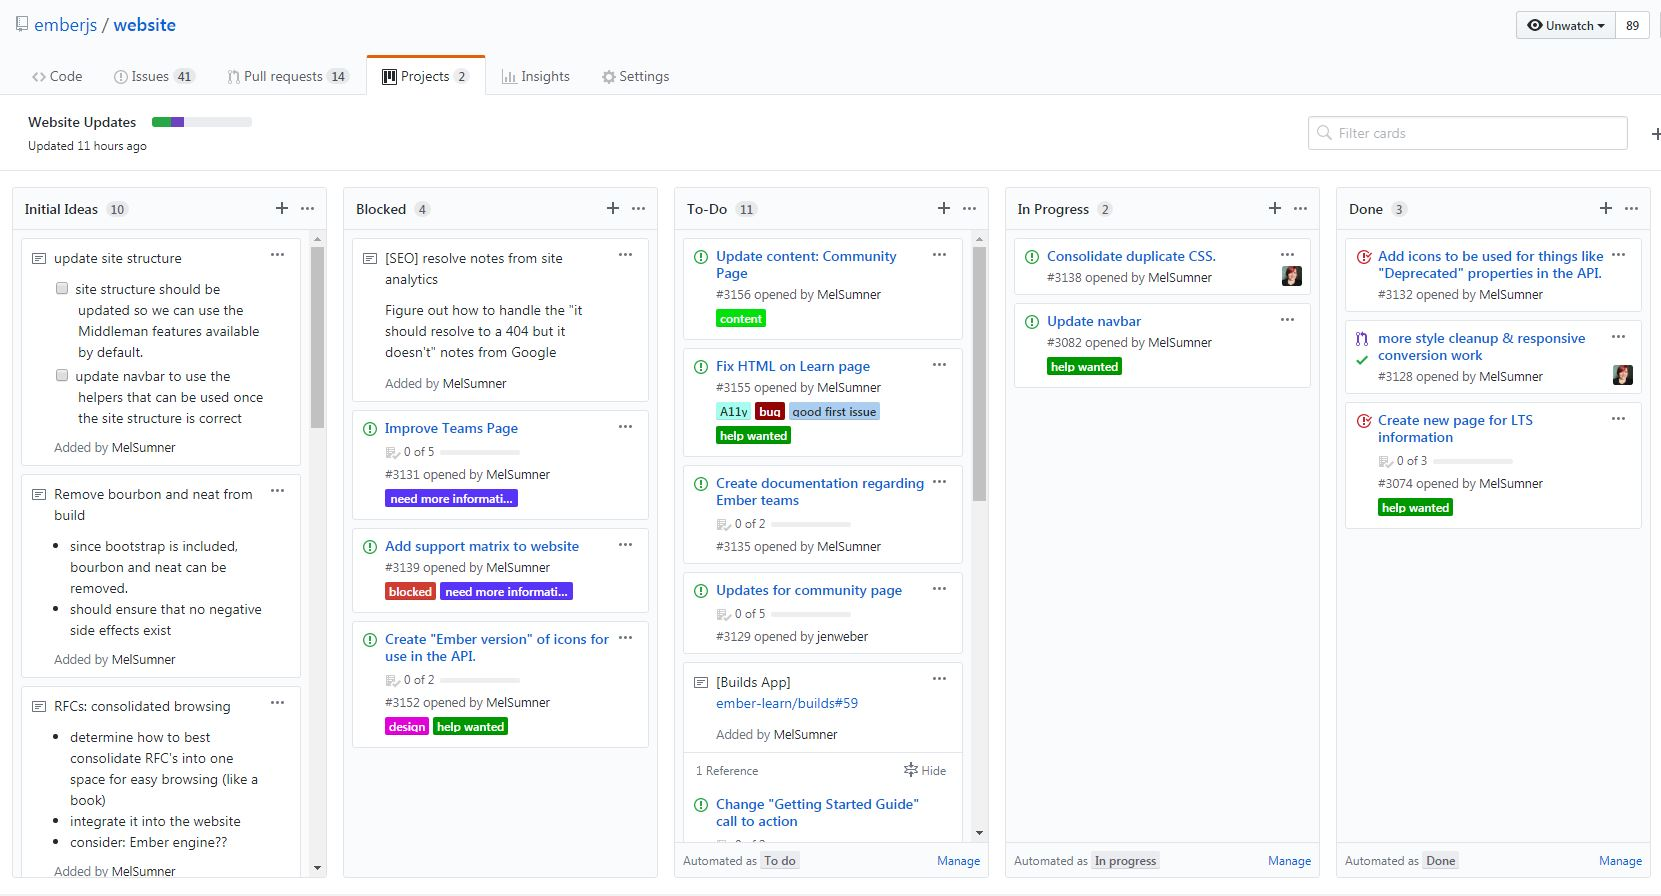 Screenshot of github project. there are four columns- inbox, to-do, in-progress and done - that track multiple issues.